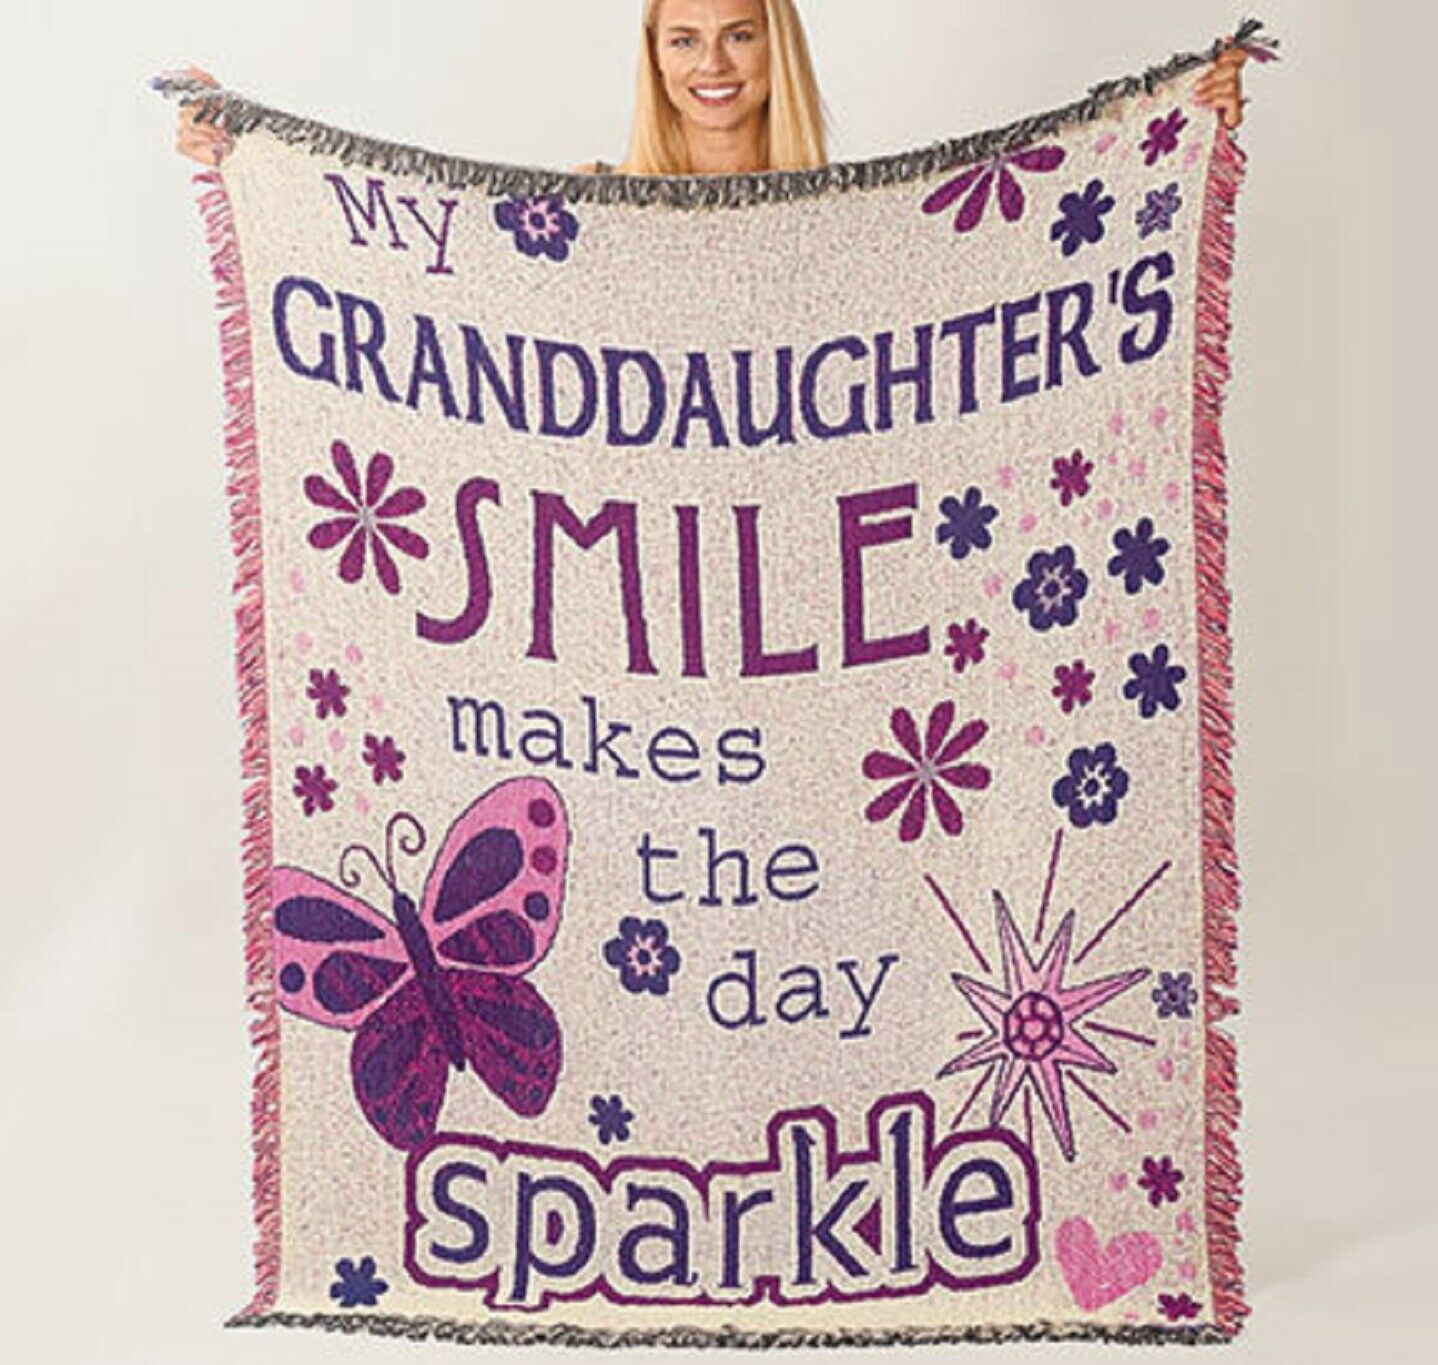 Granddaughter Throw Afghan 60″ L x 48″ W. 100% cotton Made in USA Beautiful Afghans & Throw Blankets